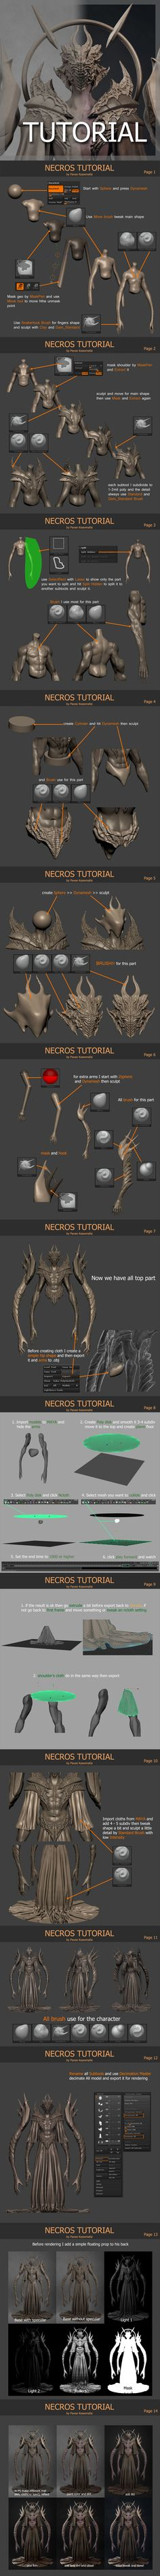 Necros [Tutorial] by Khempavee